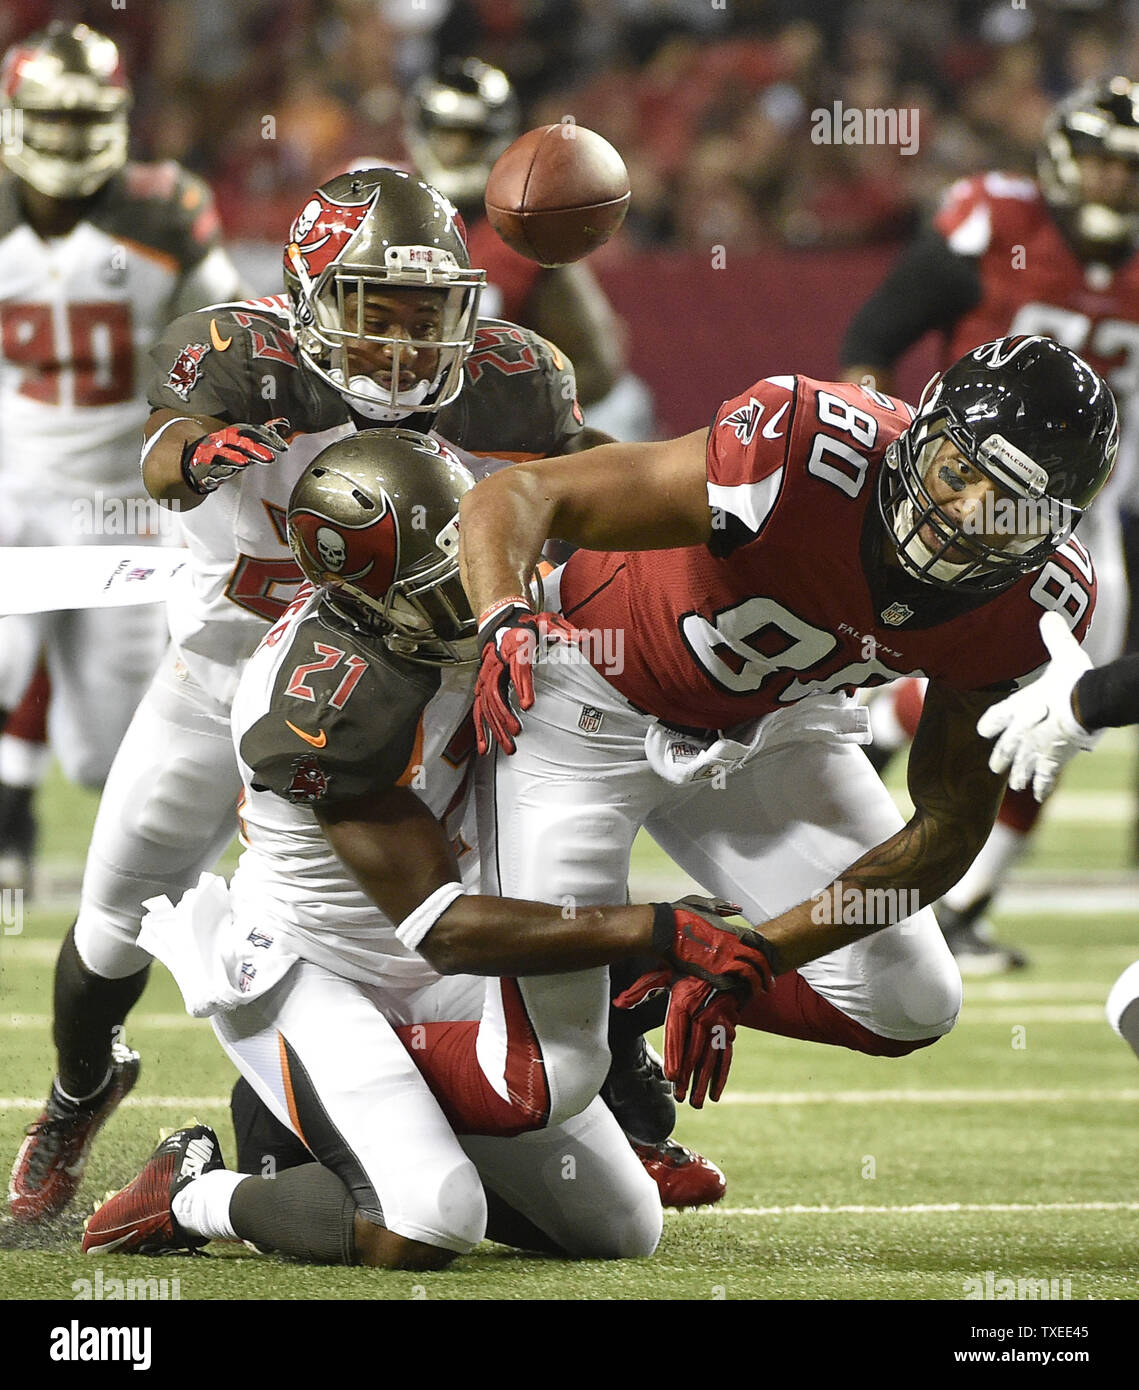 Atlanta Falcons tight end Levine Toilolo (80) fumbles the ball away under pressure from Tampa Bay Buccaneers cornerbacks Alterraun Verner (21) and Leonard Johnson (29) during the first half of their football game at the Georgia Dome in Atlanta on September 18, 2014. Tampa recovered briefly but Atlanta regained possession when Tampa fumbled before the play was over. UPI/David Tulis Stock Photo